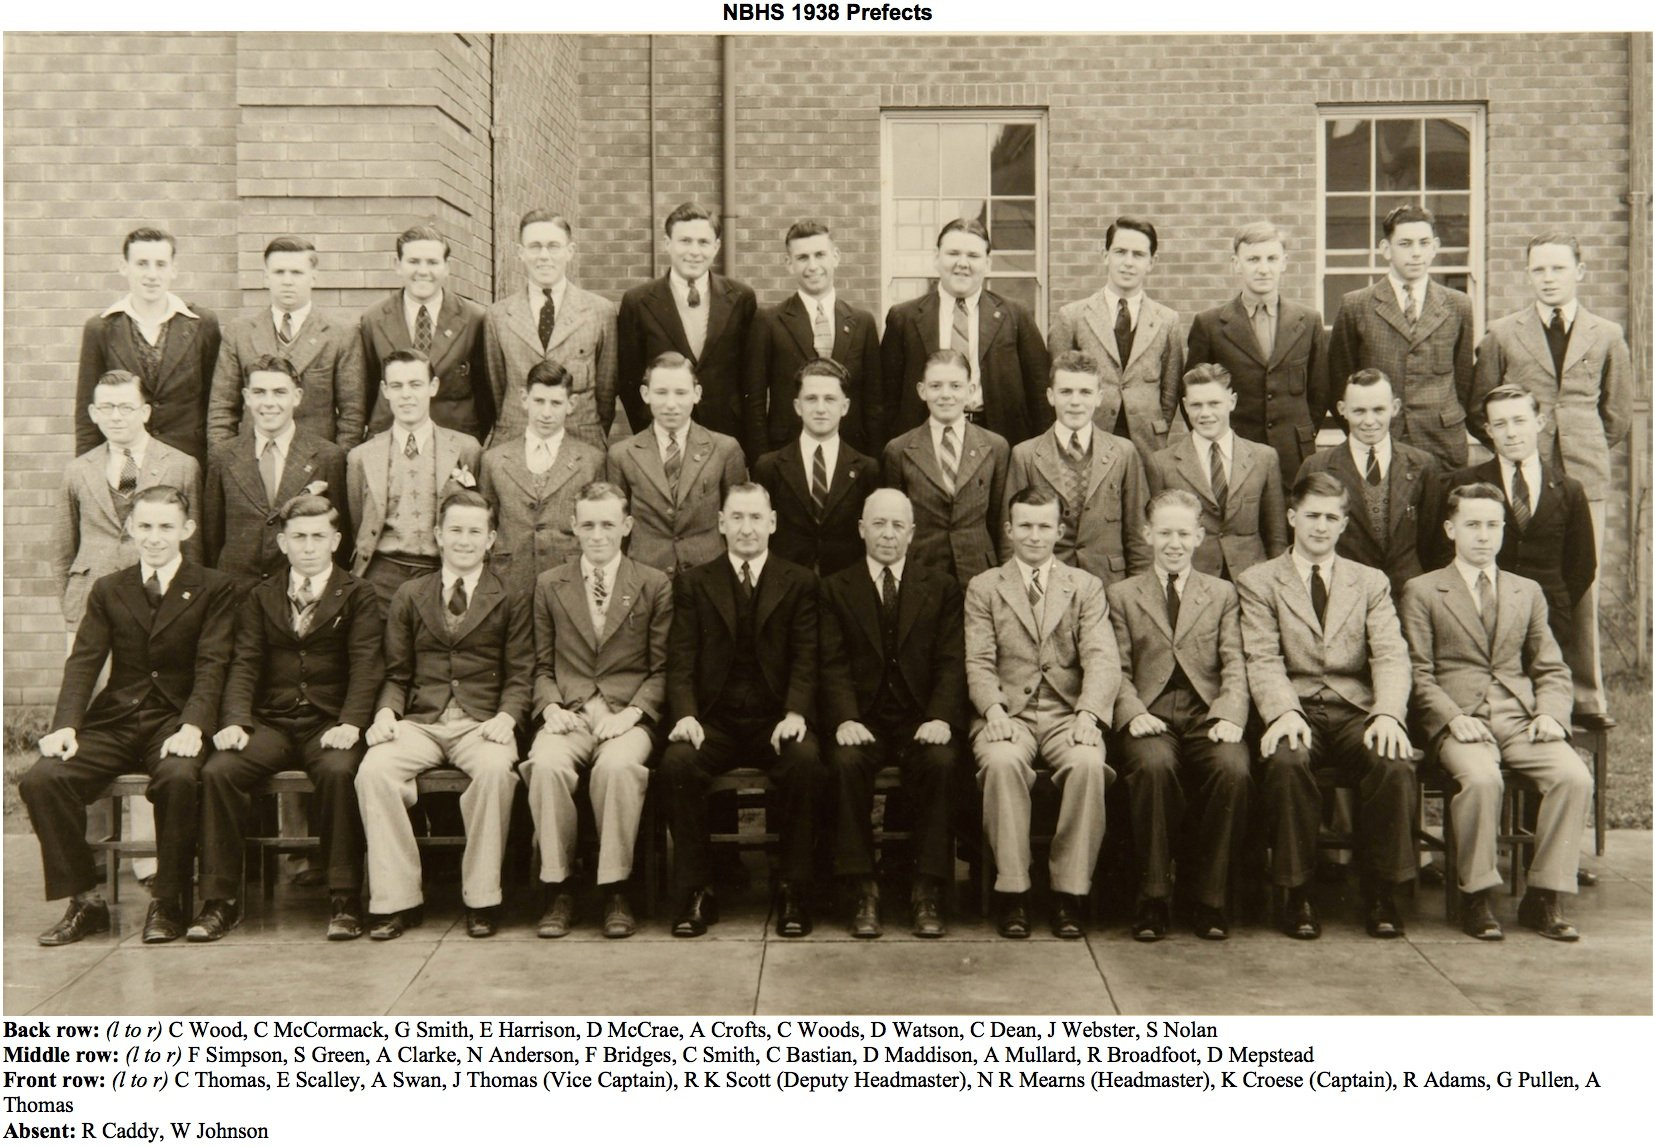 1938 Prefects